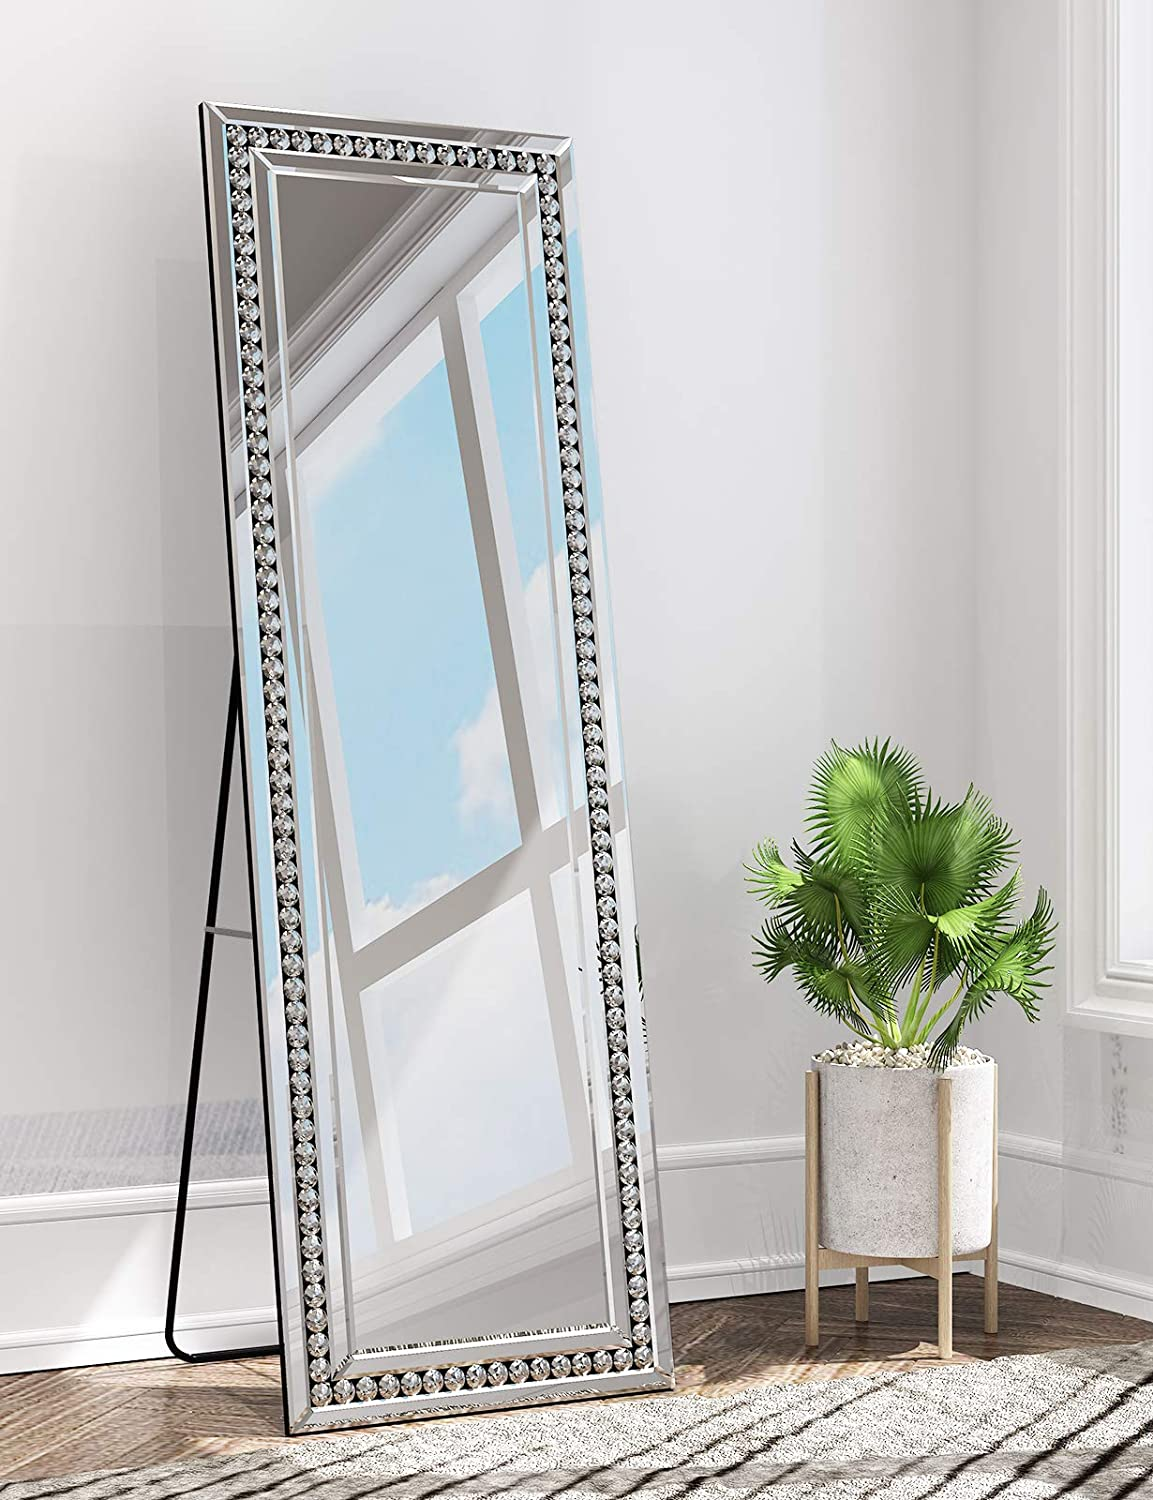 Beauty4U Full Length Mirror Rectangular Hanging Standing or Leaning Rose Gold Bedroom Mirror Floor Mirror Wall-Mounted Mirror with Alloy Frame,67 x 25.6